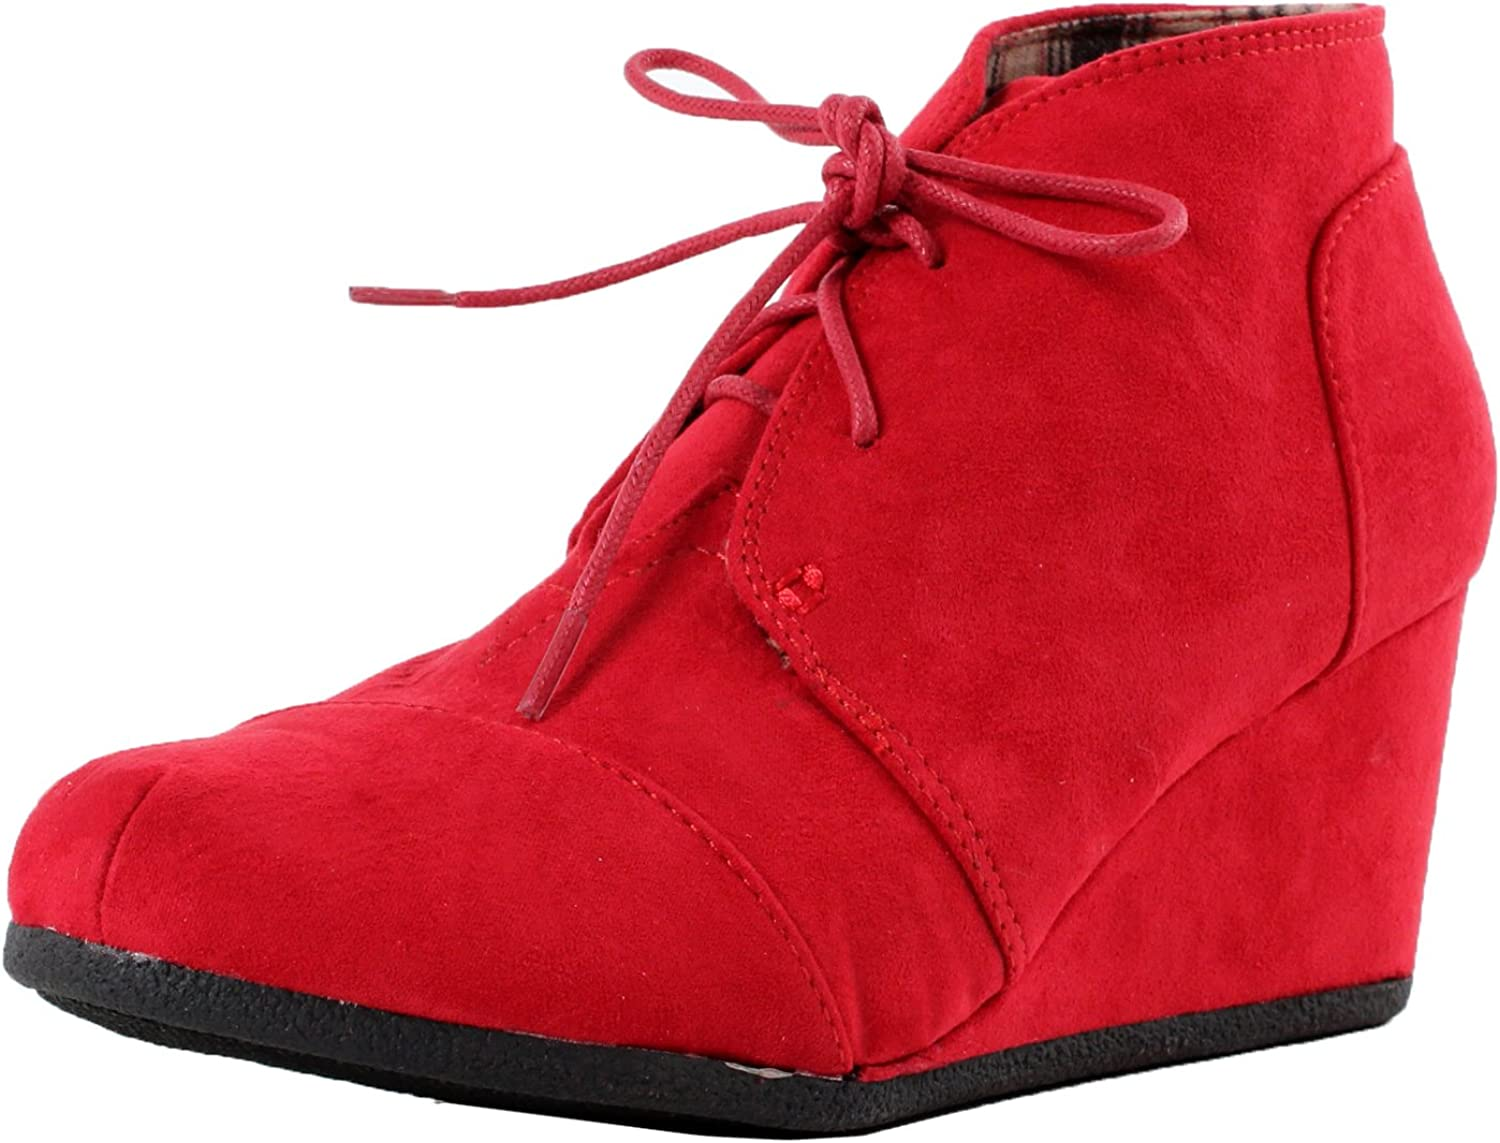 Top Moda Forever Link Womens Patricia-01 Lace Up Faux Suede Ankle Wedge Booties,6 B(M) US,Red